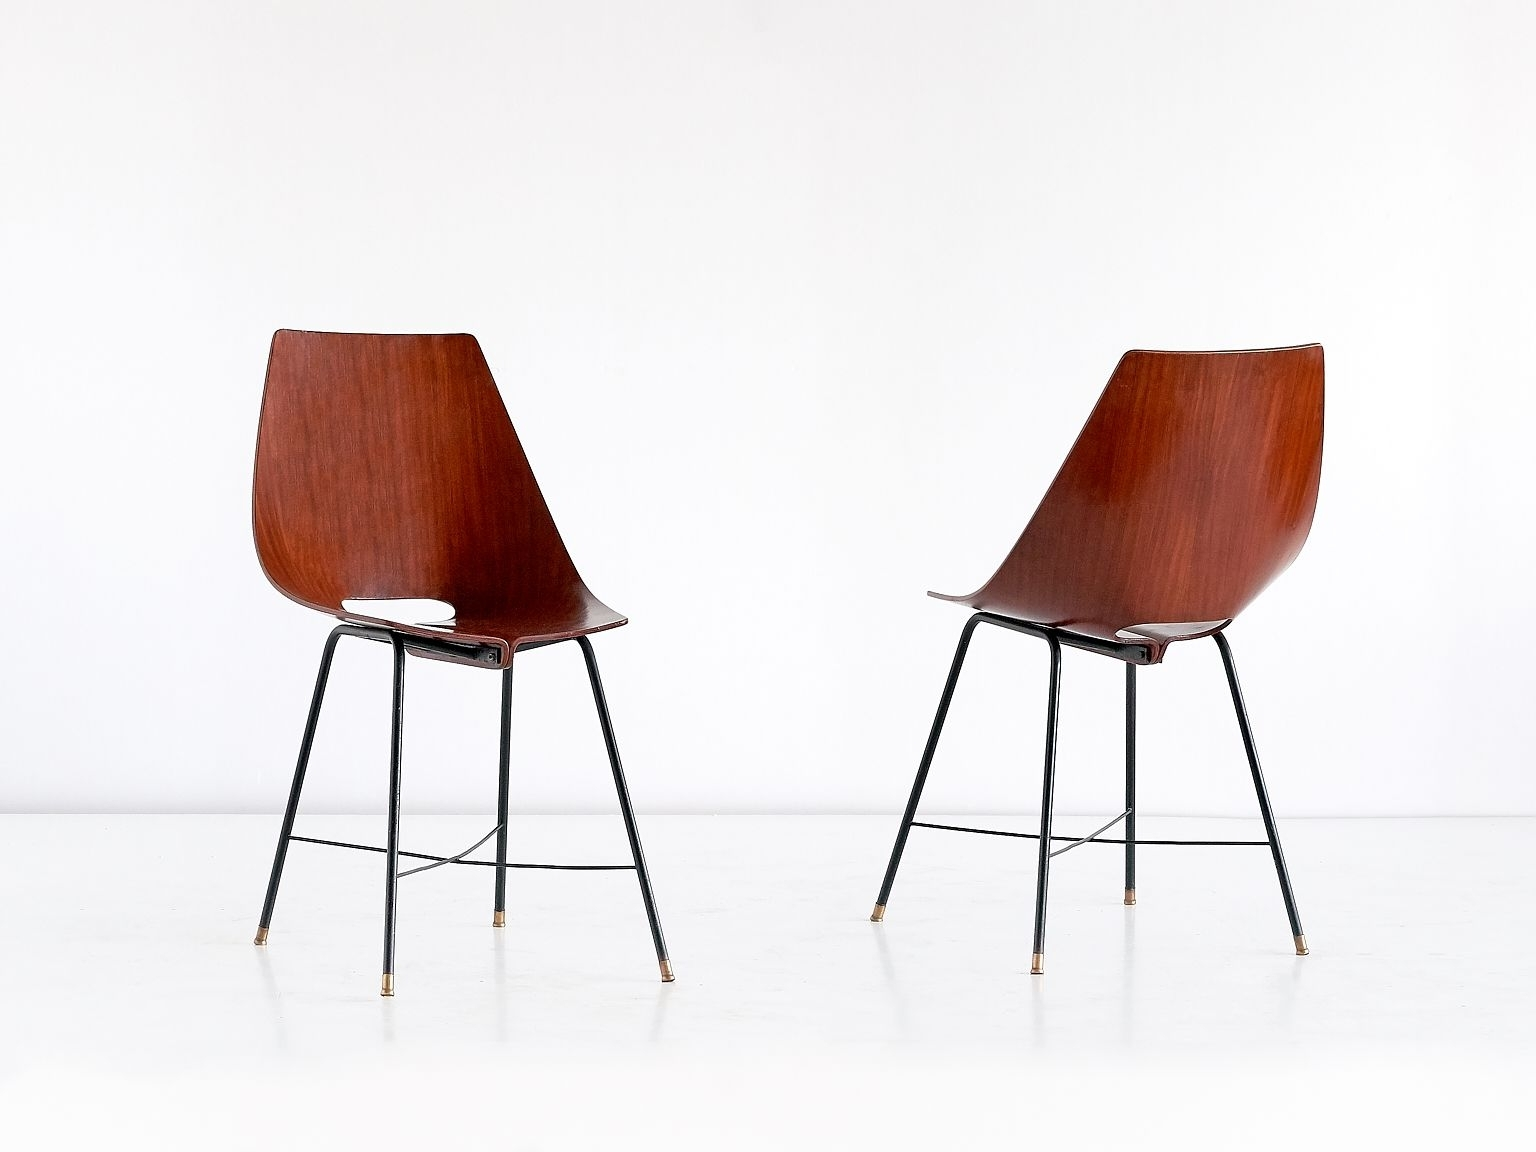 Plywood & Metal Brown Dining Chairs Intended For Newest Italian 127 B Plywood Dining Chairs From Societá Compensati Curvati (#12 of 20)